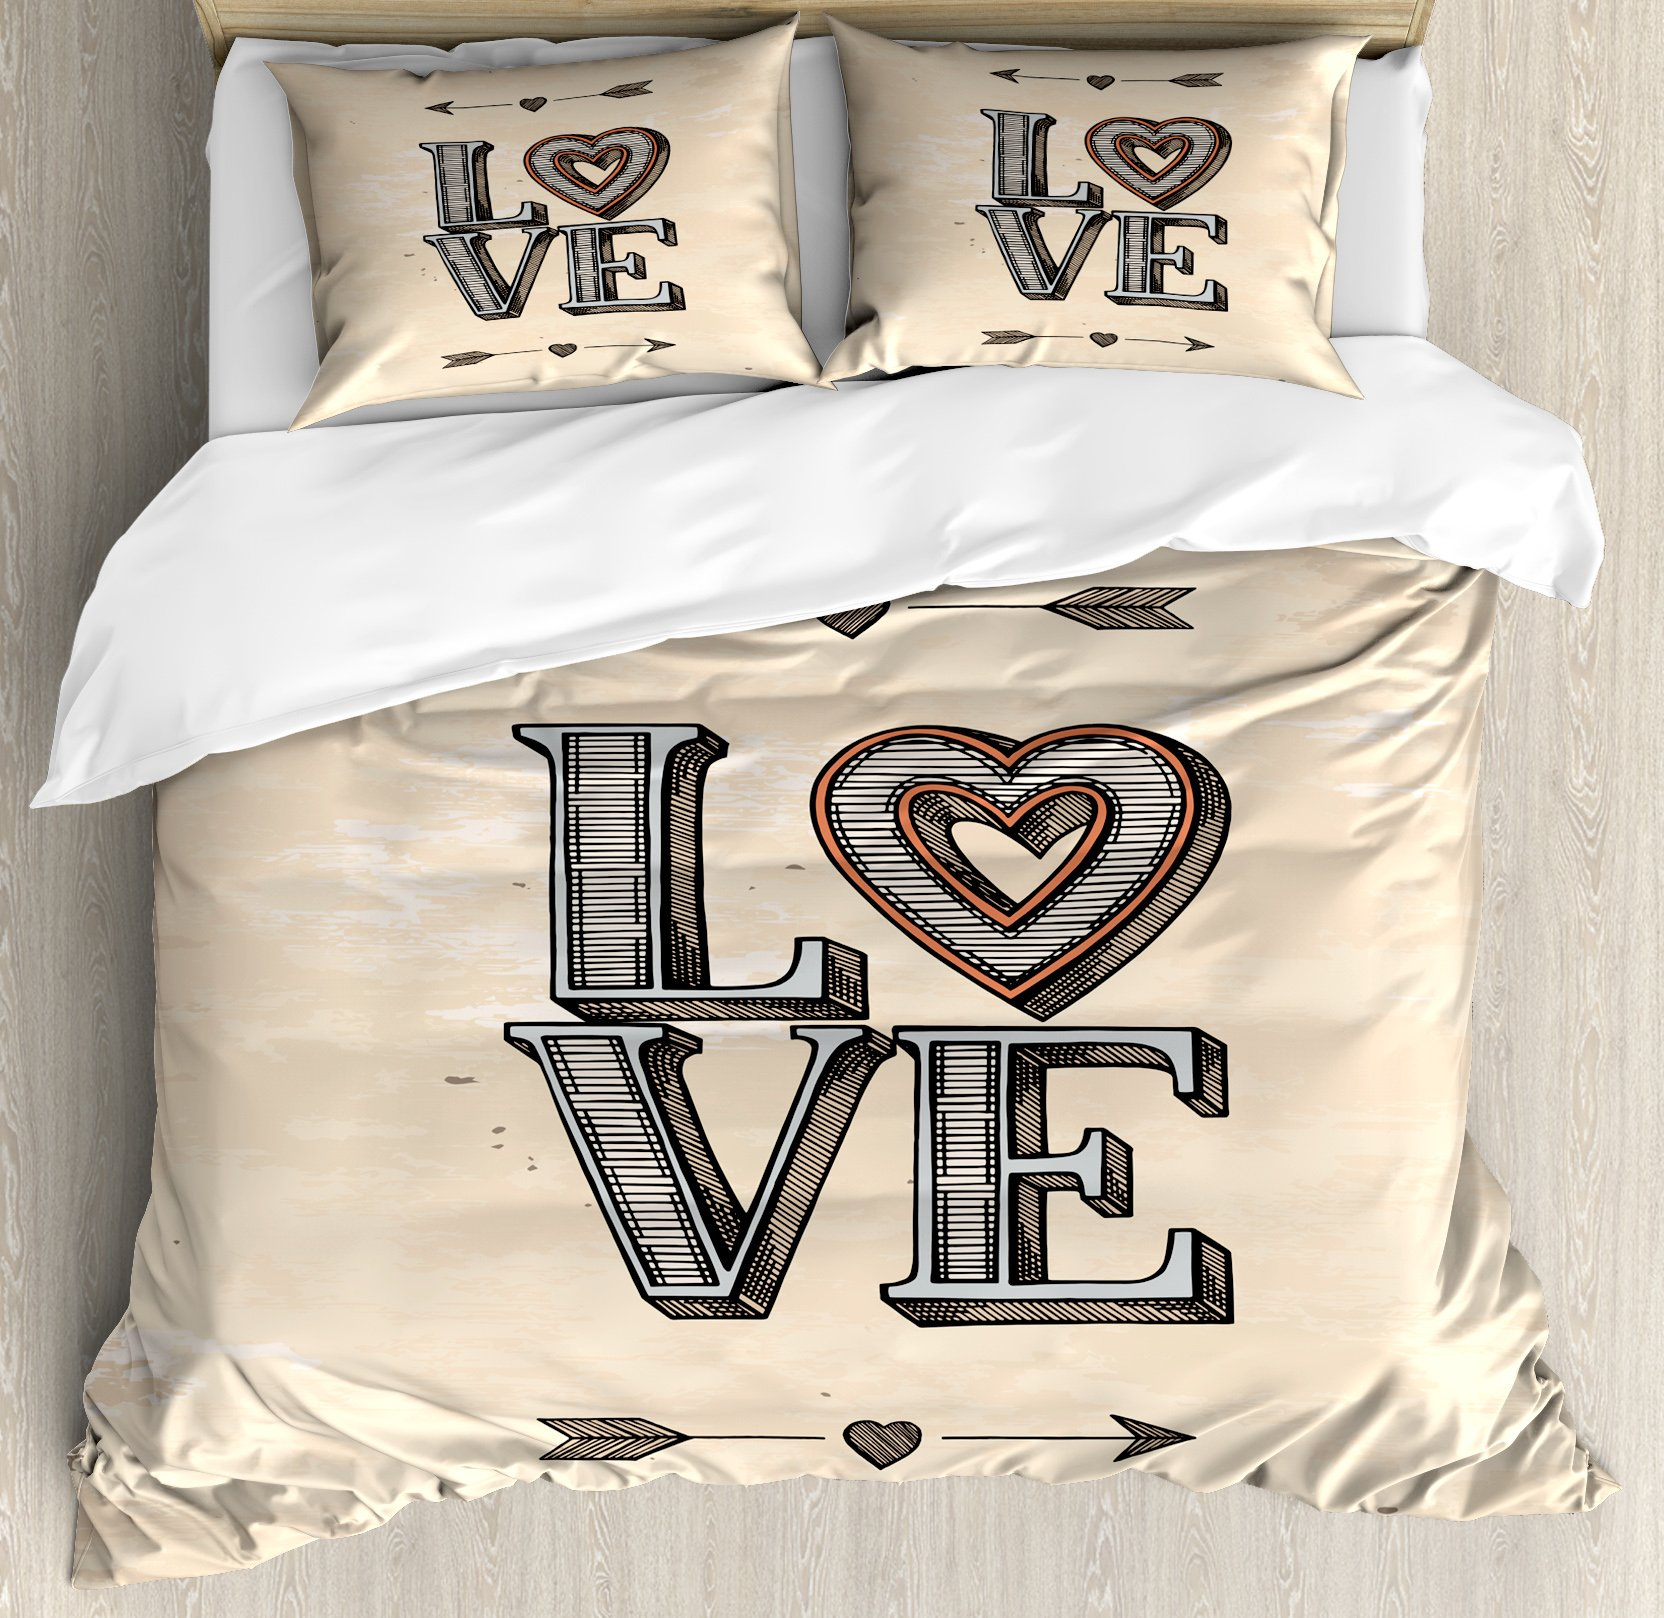 Love Duvet Cover Set King Size by Ambesonne, Grunge Looking Vintage Letters with Heart and Arrows Boho Tribal Hipster Design, Decorative 3 Piece Bedding Set with 2 Pillow Shams, Beige Grey Orange